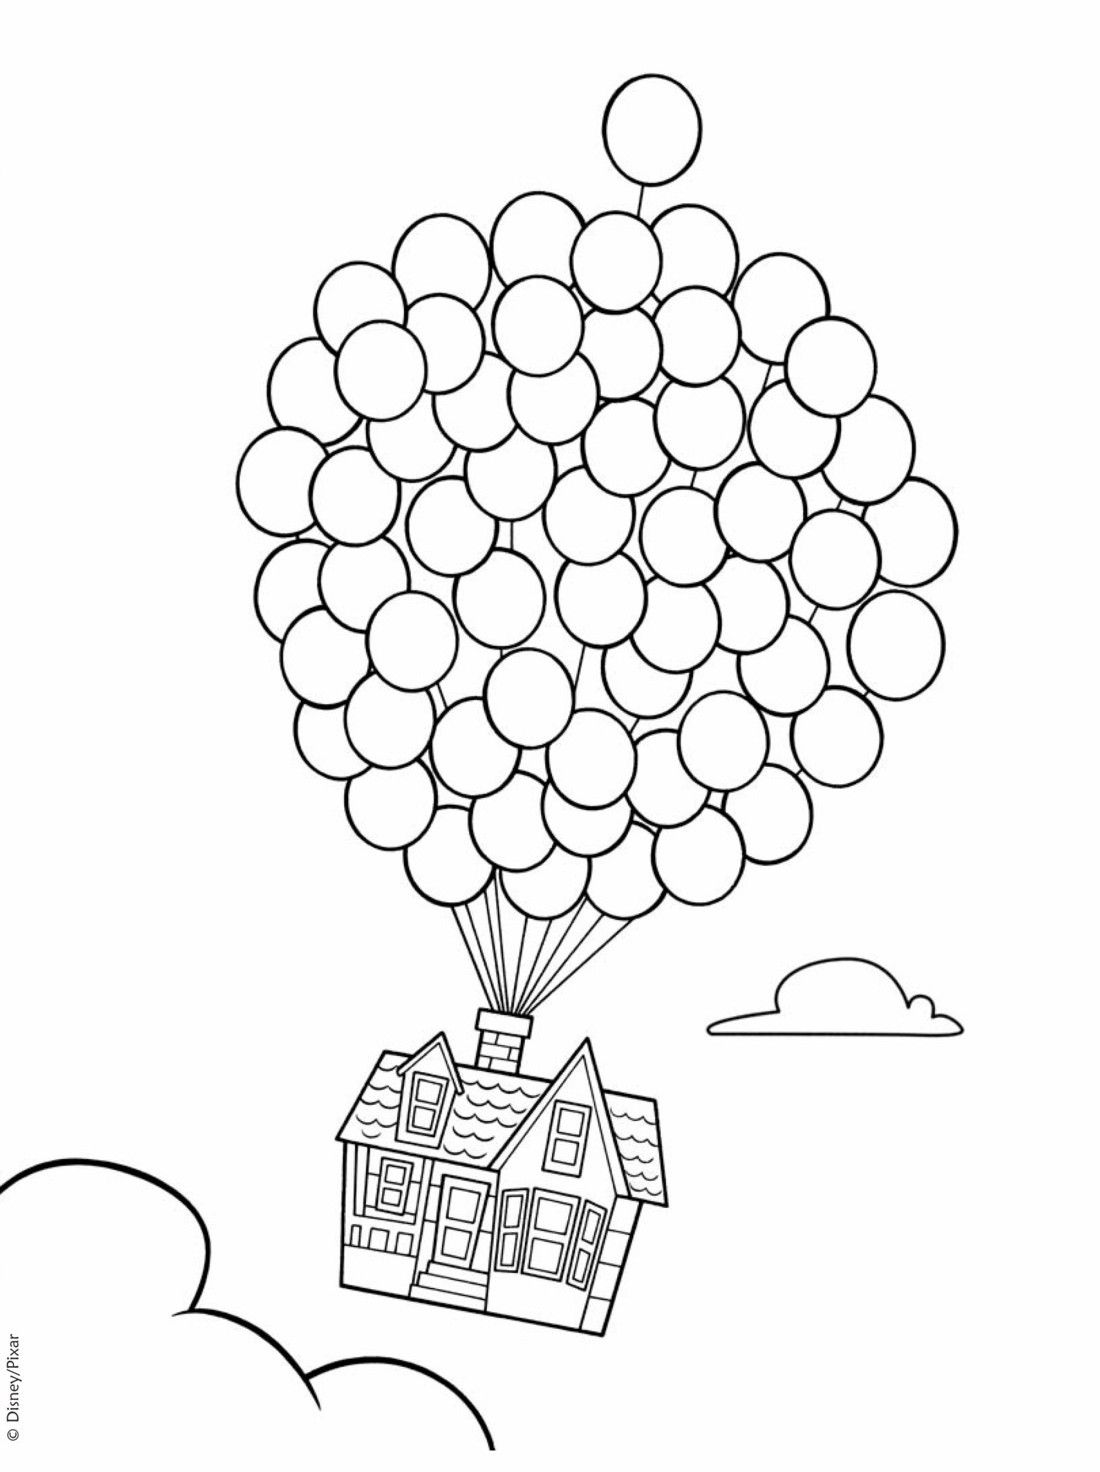 Up For Children Funny Free Up Coloring Page To Print And Color From The Gallery Up Just Colo Space Coloring Pages Cute Coloring Pages Easy Coloring Pages